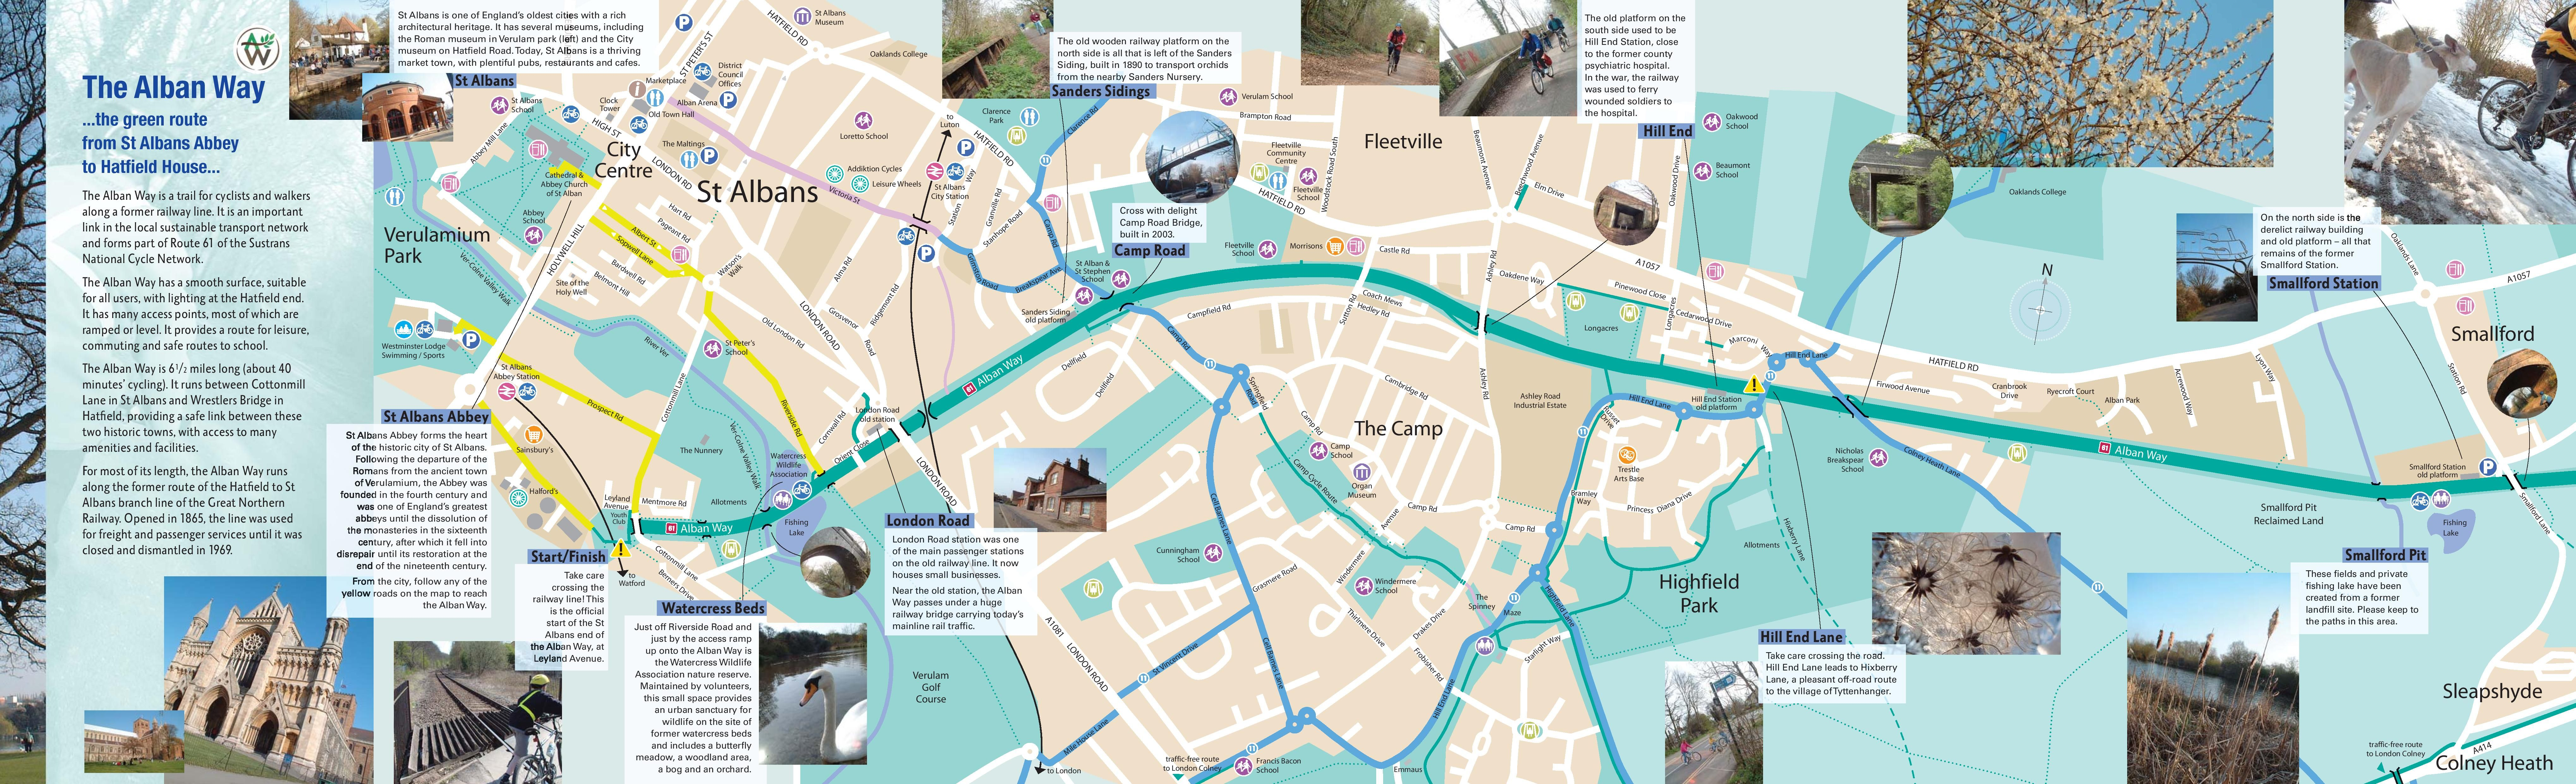 Alban Way P1 St Albans Abbey to